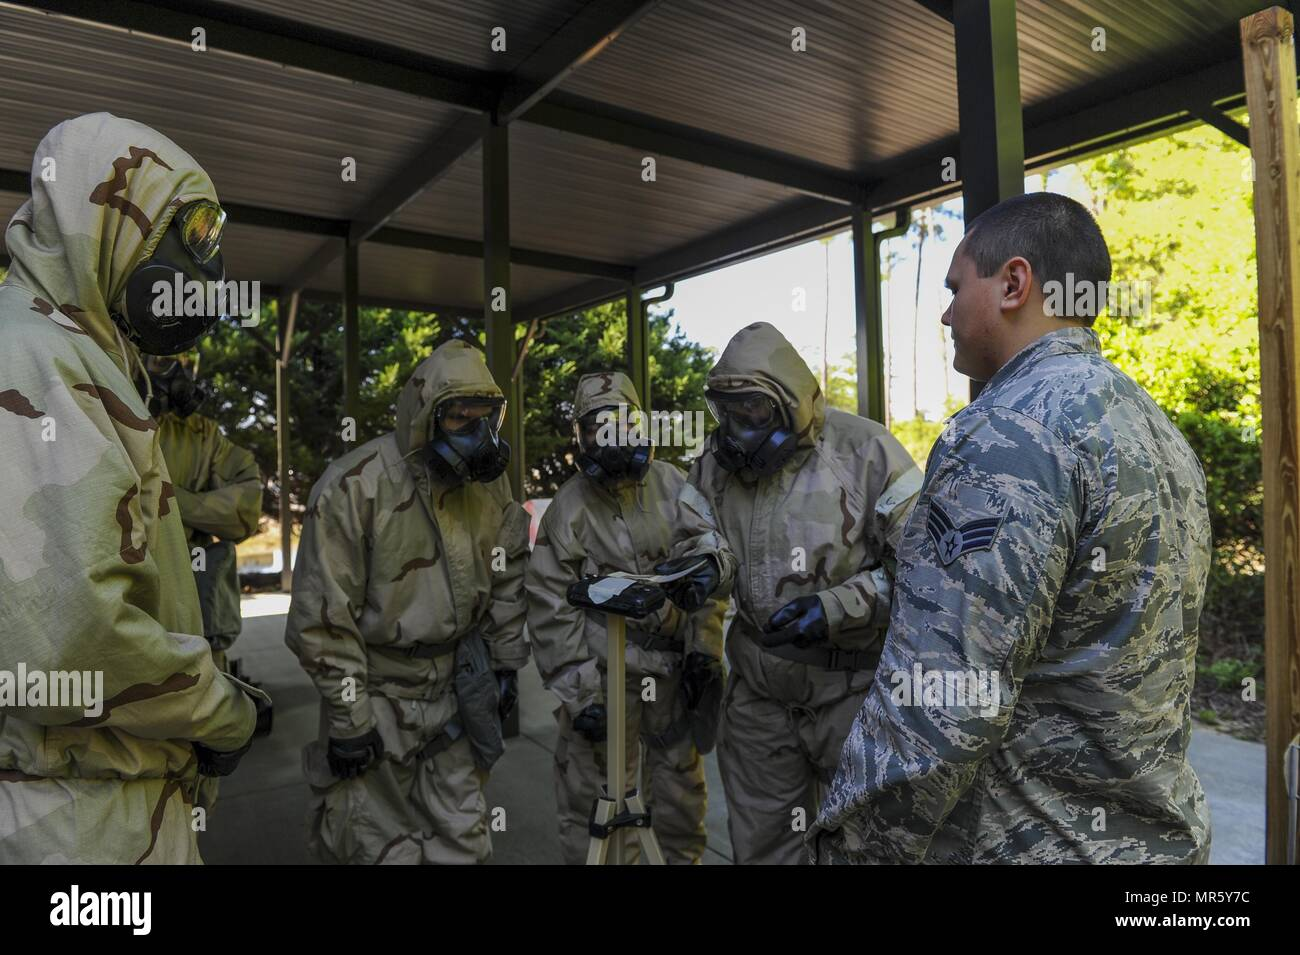 Air Commandos attended a chemical, biological, radiological and nuclear survival skills class at Hurlburt Field, Fla., April 4, 2017. The skills taught during CBRN Survival Skills prepare Air Commandos for the possibility of a CBRN related attack. Without it, Airmen could be left vulnerable to terrorist or state use of CBRN weapons. The CBRN Survival Skills class teaches Air Commandos how to properly inspect, don and wear the Chemical Protective Overgarment in case of a chemical warfare related attack. - Stock Image